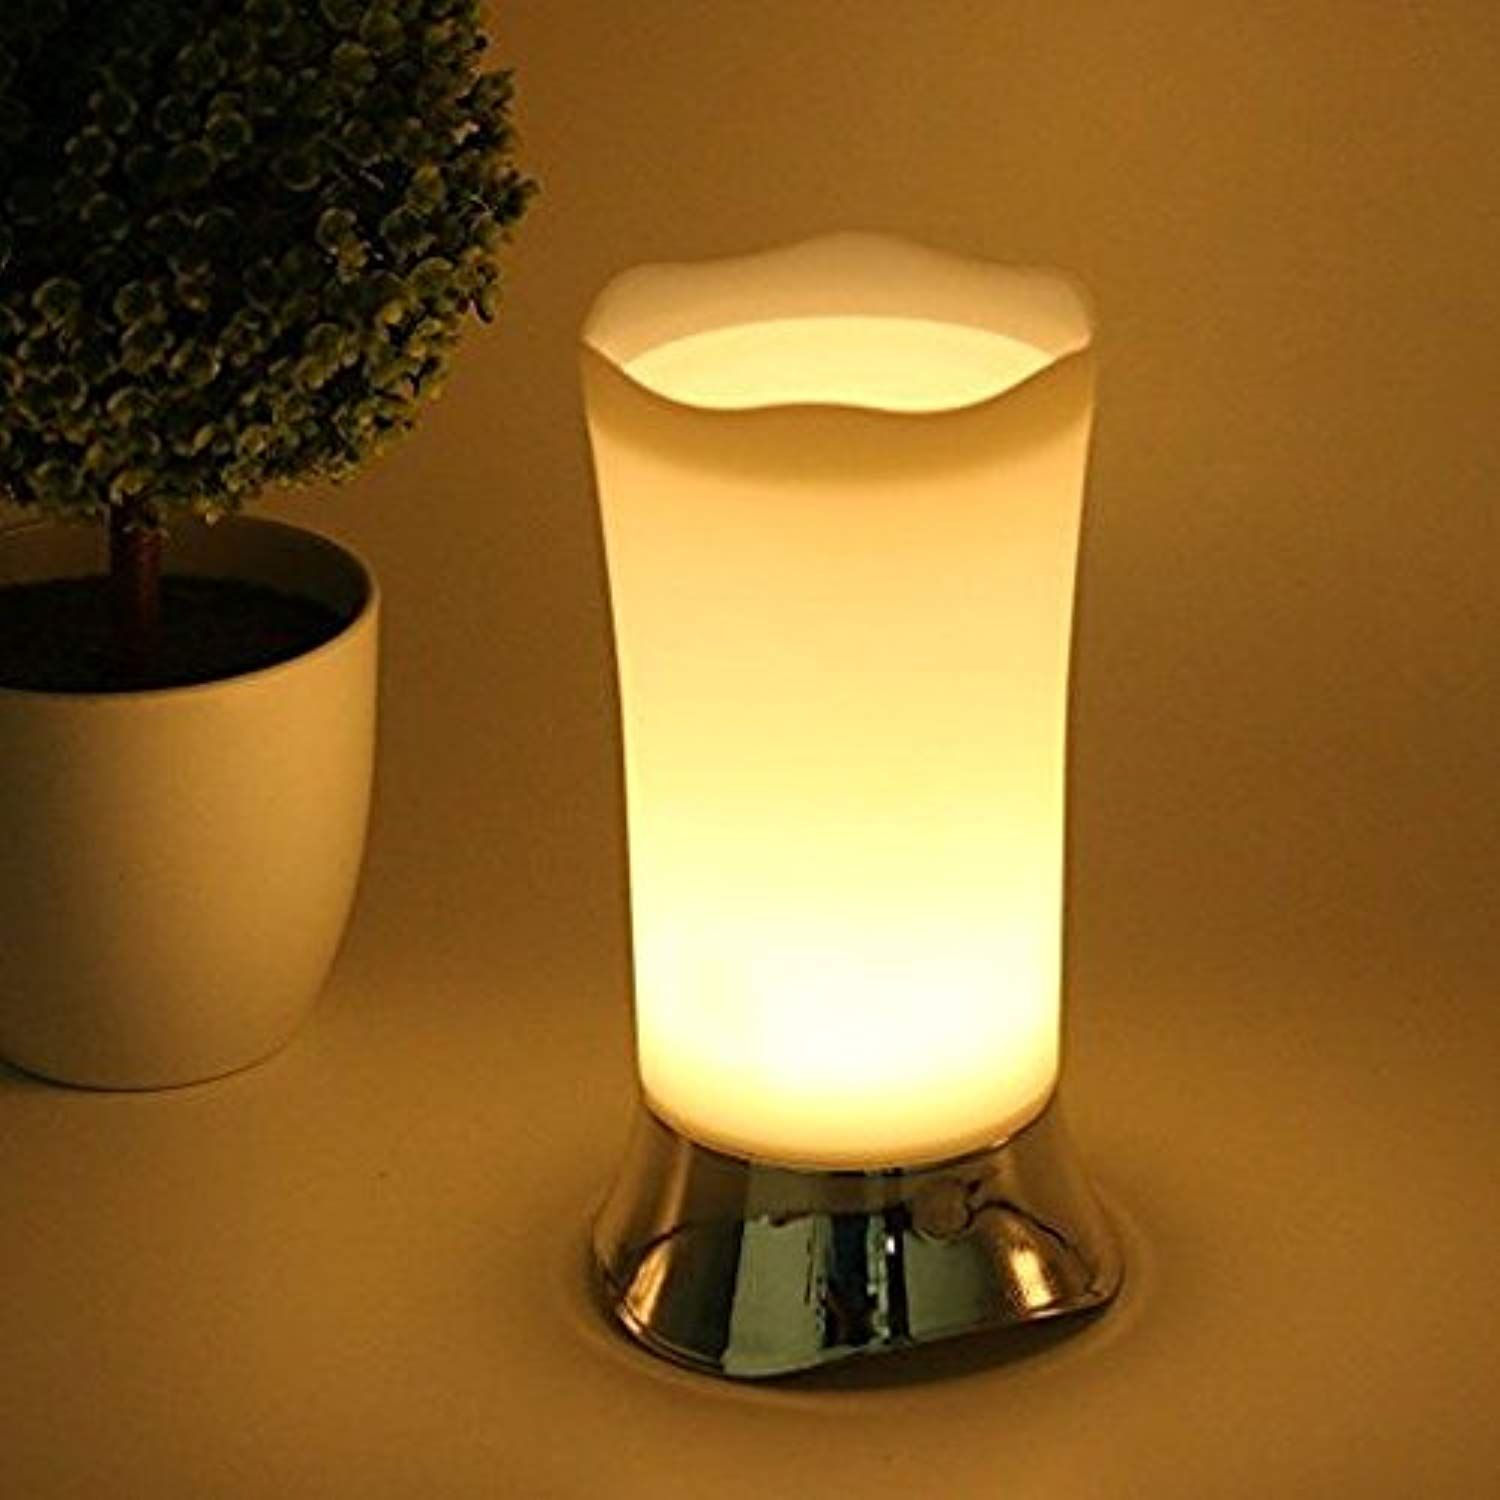 Deeplite Battery Operated Table Lamp With Motion Sensor Cordless